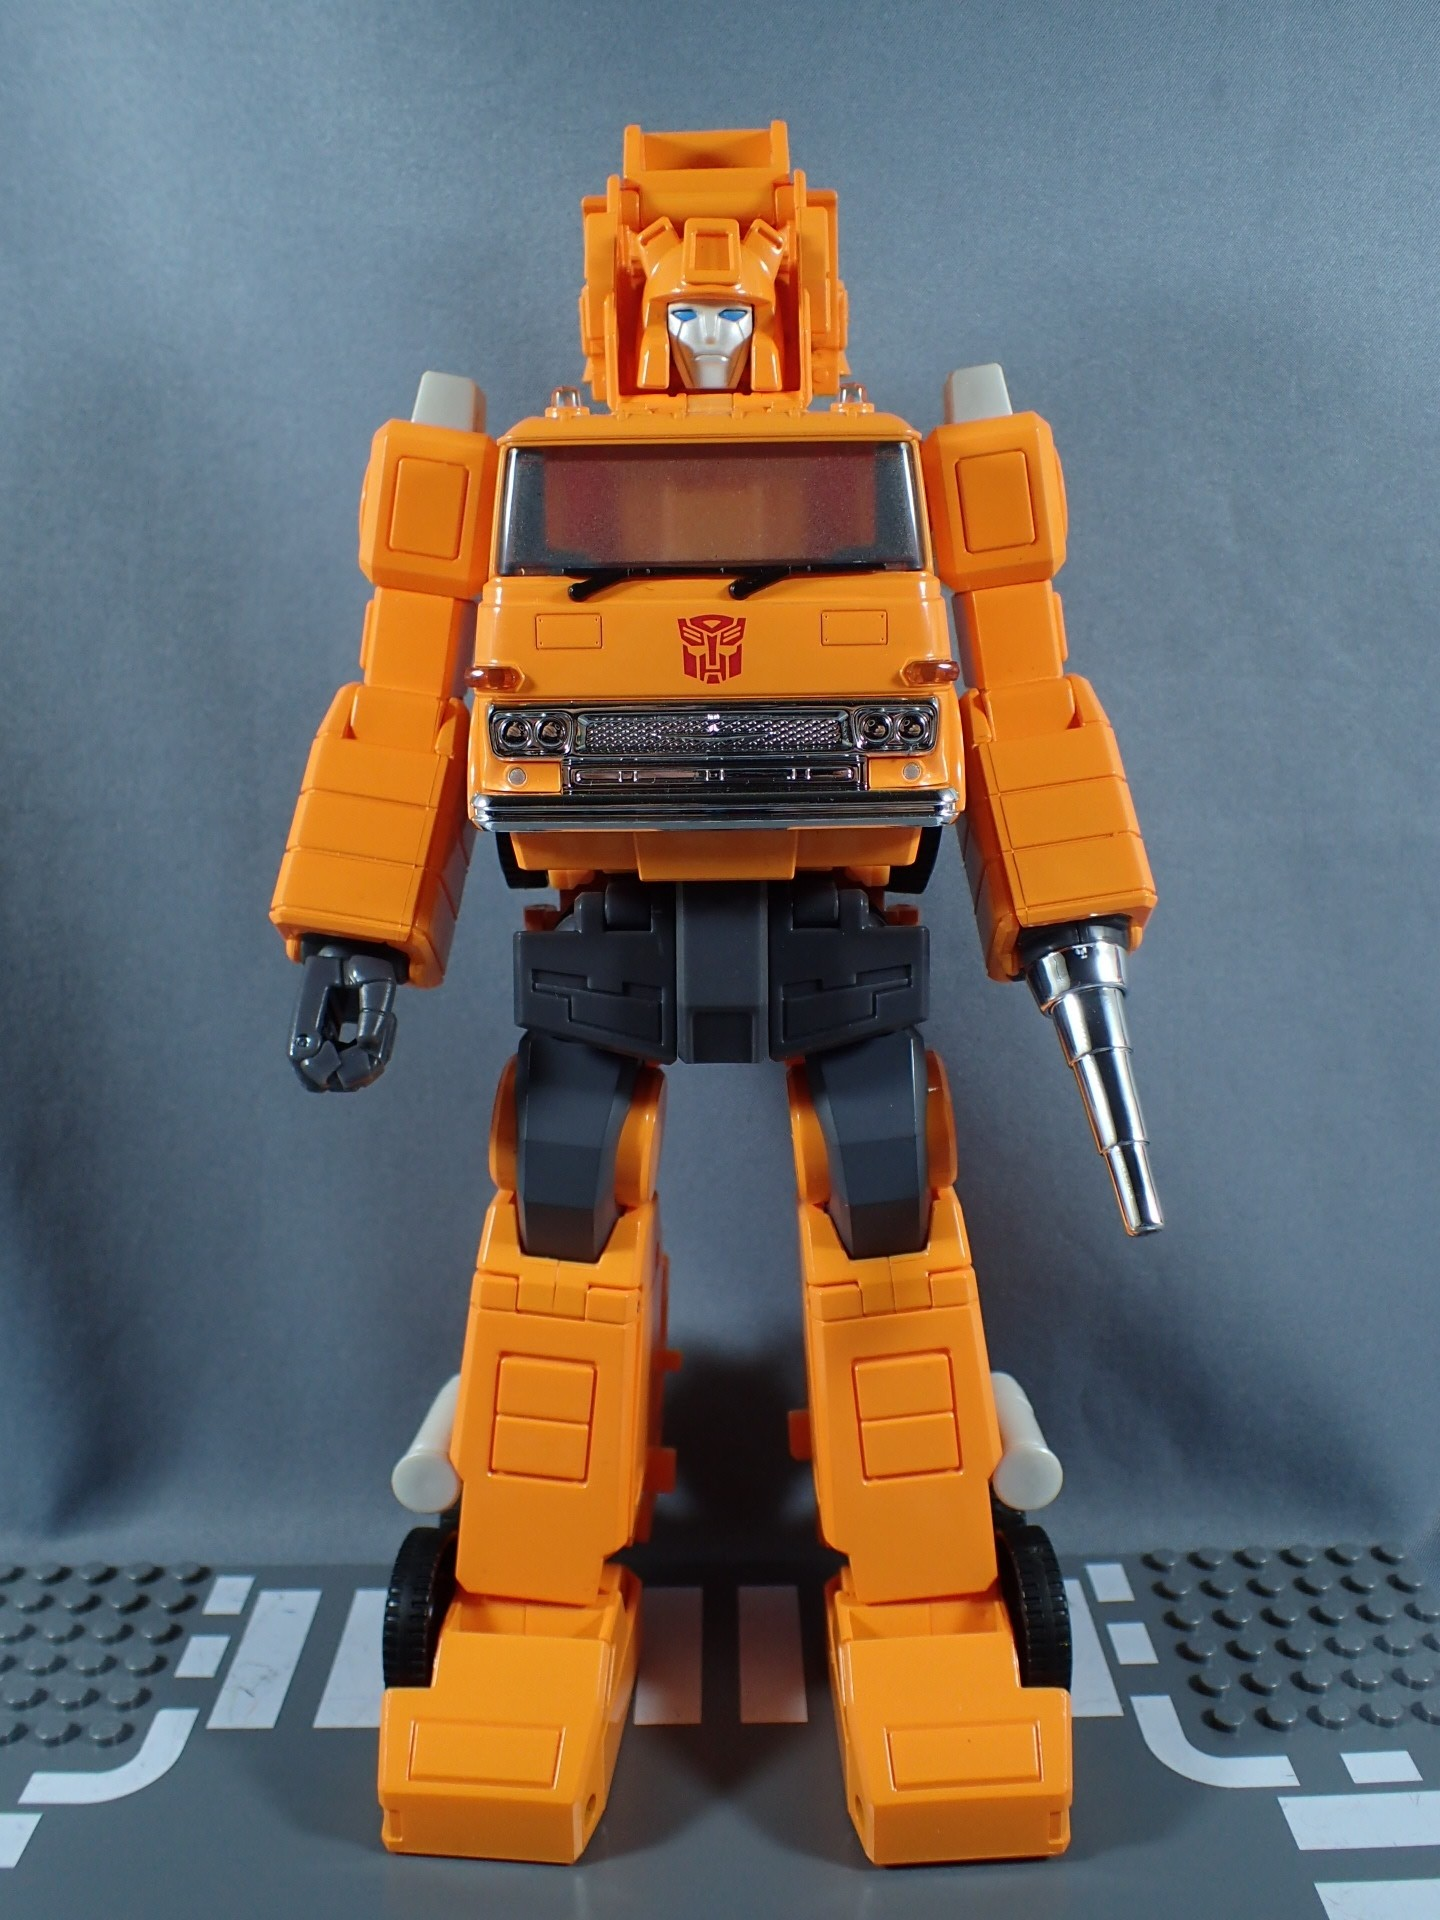 Transformers News: More Images and Video Review of Transformers Masterpiece MP-35 Grapple